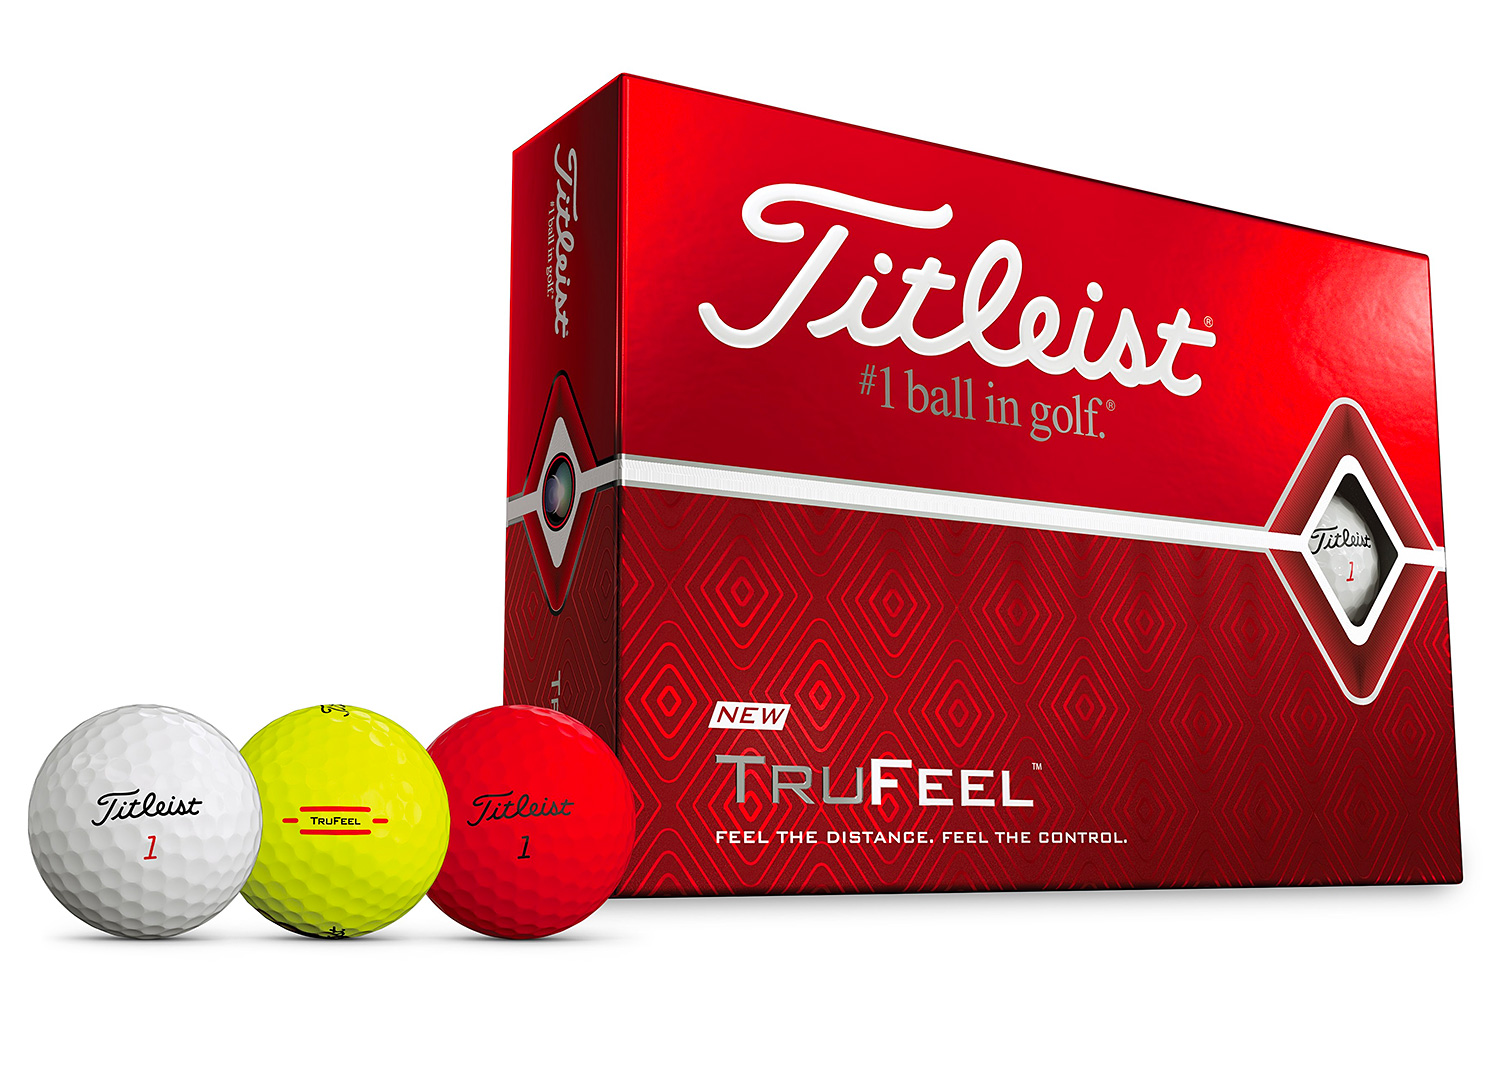 Titleist Introduces Advanced & Versatile TruFeel Golf Balls at werd.com